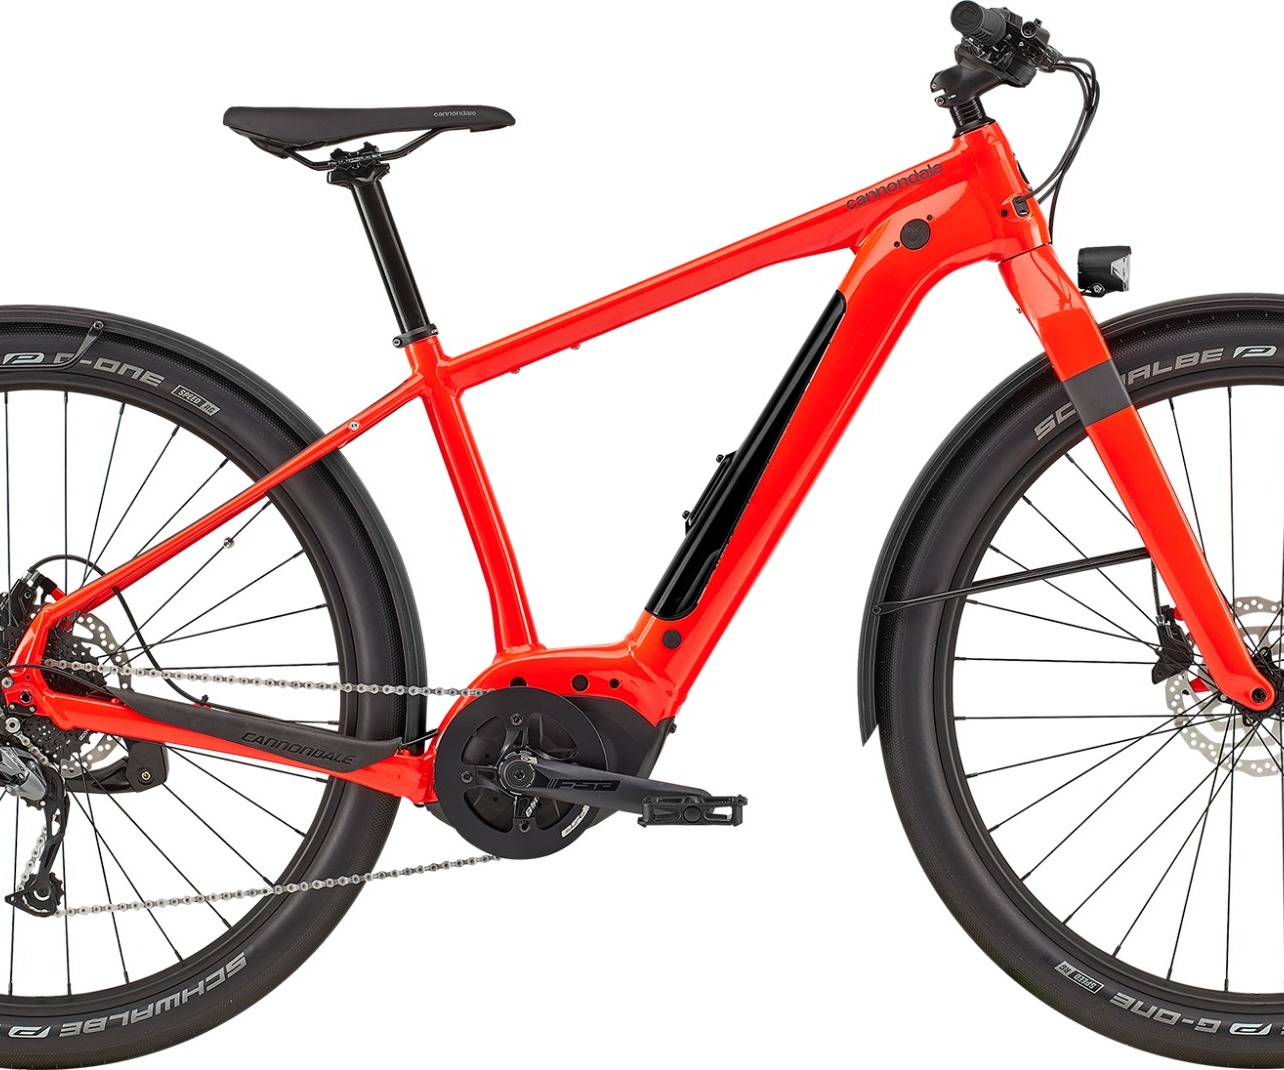 Cannondale Urban - Commuter - Touring - Commuting E-Bikes